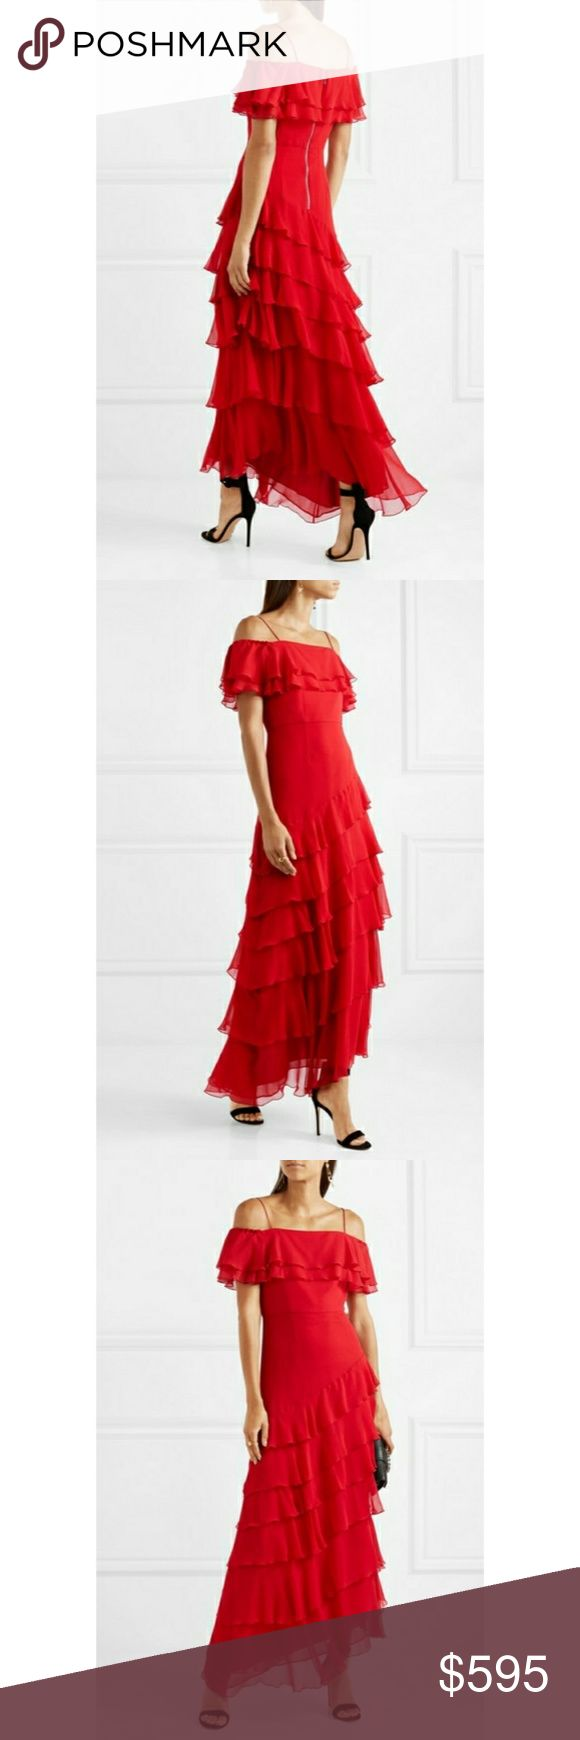 Alice and Olivia Elioisa ruffled off-the-shoulder ❤Red dresses are such a good choice for parties - they have instant impact and look great in photographs. Alice + Olivia's 'Elioisa' gown is cut from silk-chiffon in ruffled tiers and sits off the shoulder. Though the skirt is long, the hem is cut asymmetrically so this piece feels light and breezy to wear.❤  - Red silk-chiffon  - Zip fastening along back  - 100% silk; trim: 91% silk, 9% elastane; lining: 94% polyester, 6% elastane  - Dry…